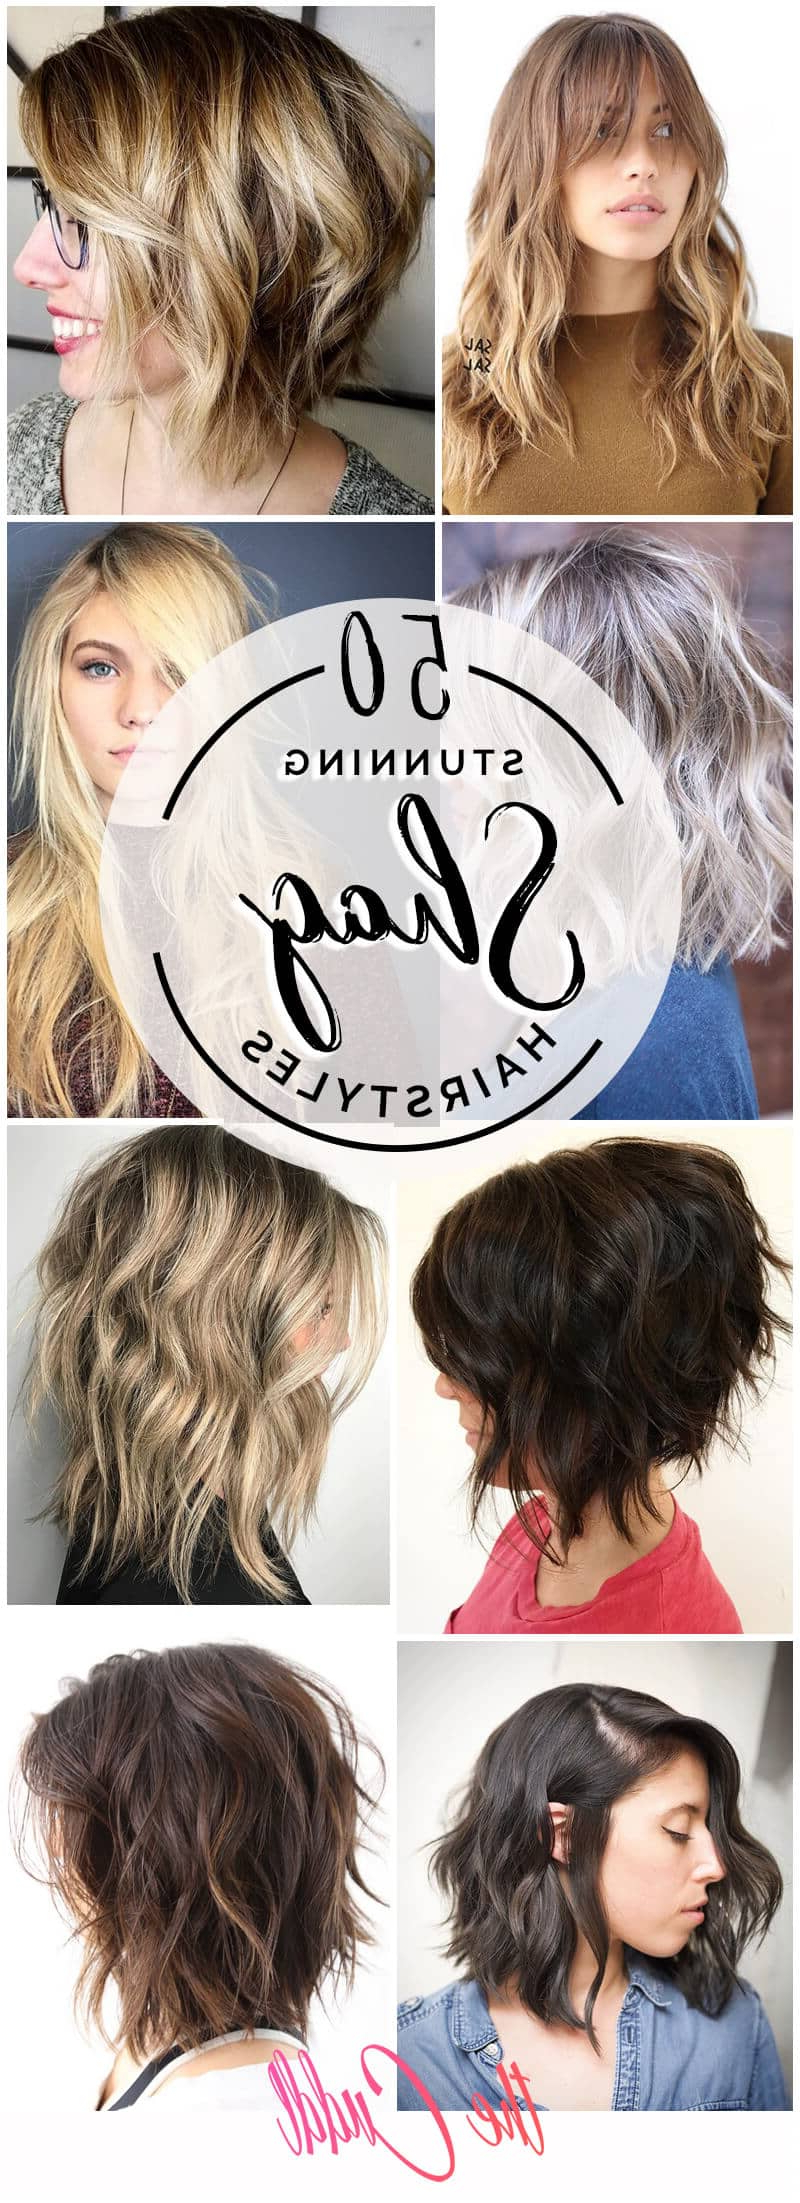 Fashionable Medium Loose Chocolate Shag Haircuts For 50 Ways To Wear A Chic Shag Haircut Ideas For A Trendy Look (Gallery 10 of 20)